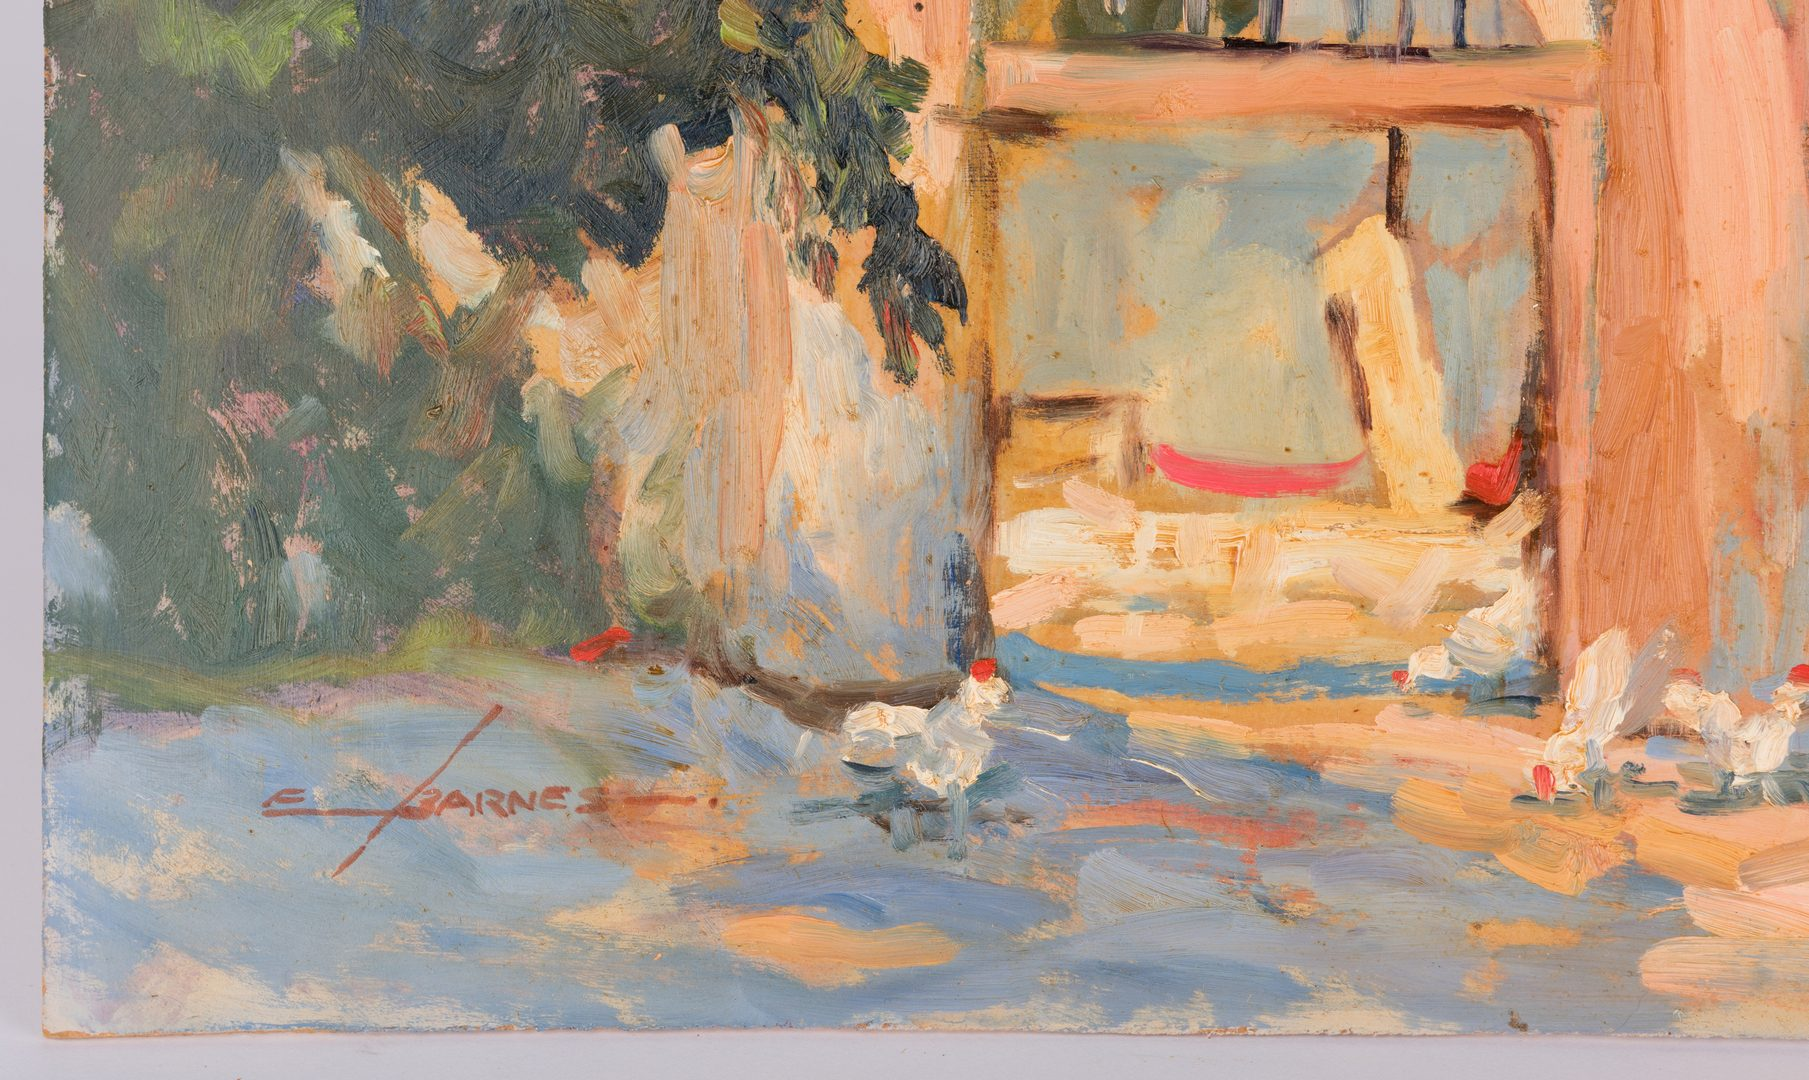 Lot 433: Earline Barnes Oil on Board w/ Chickens